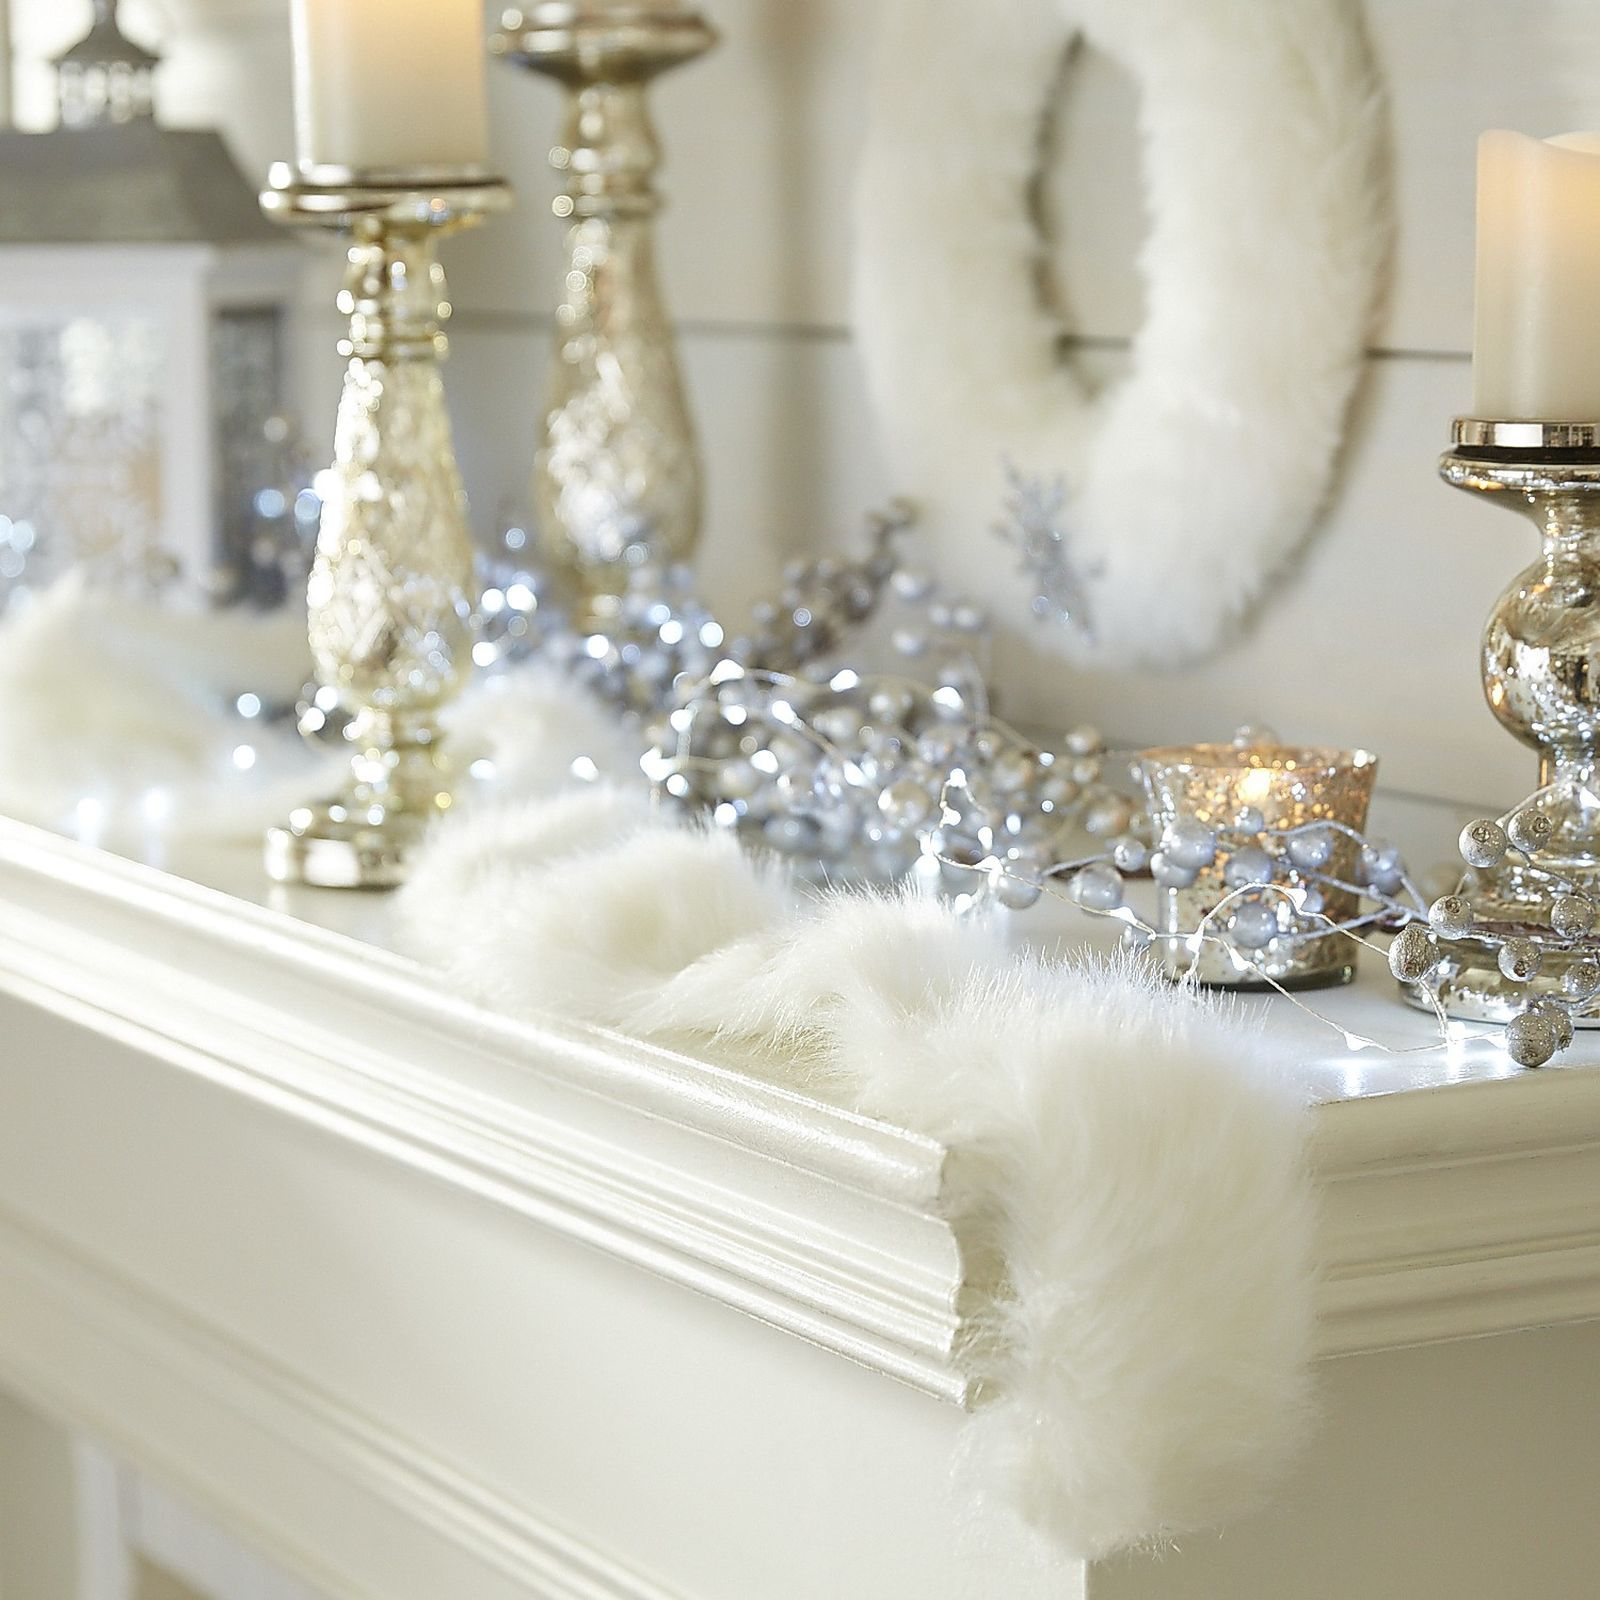 Think outside your box of traditional holiday decor and consider